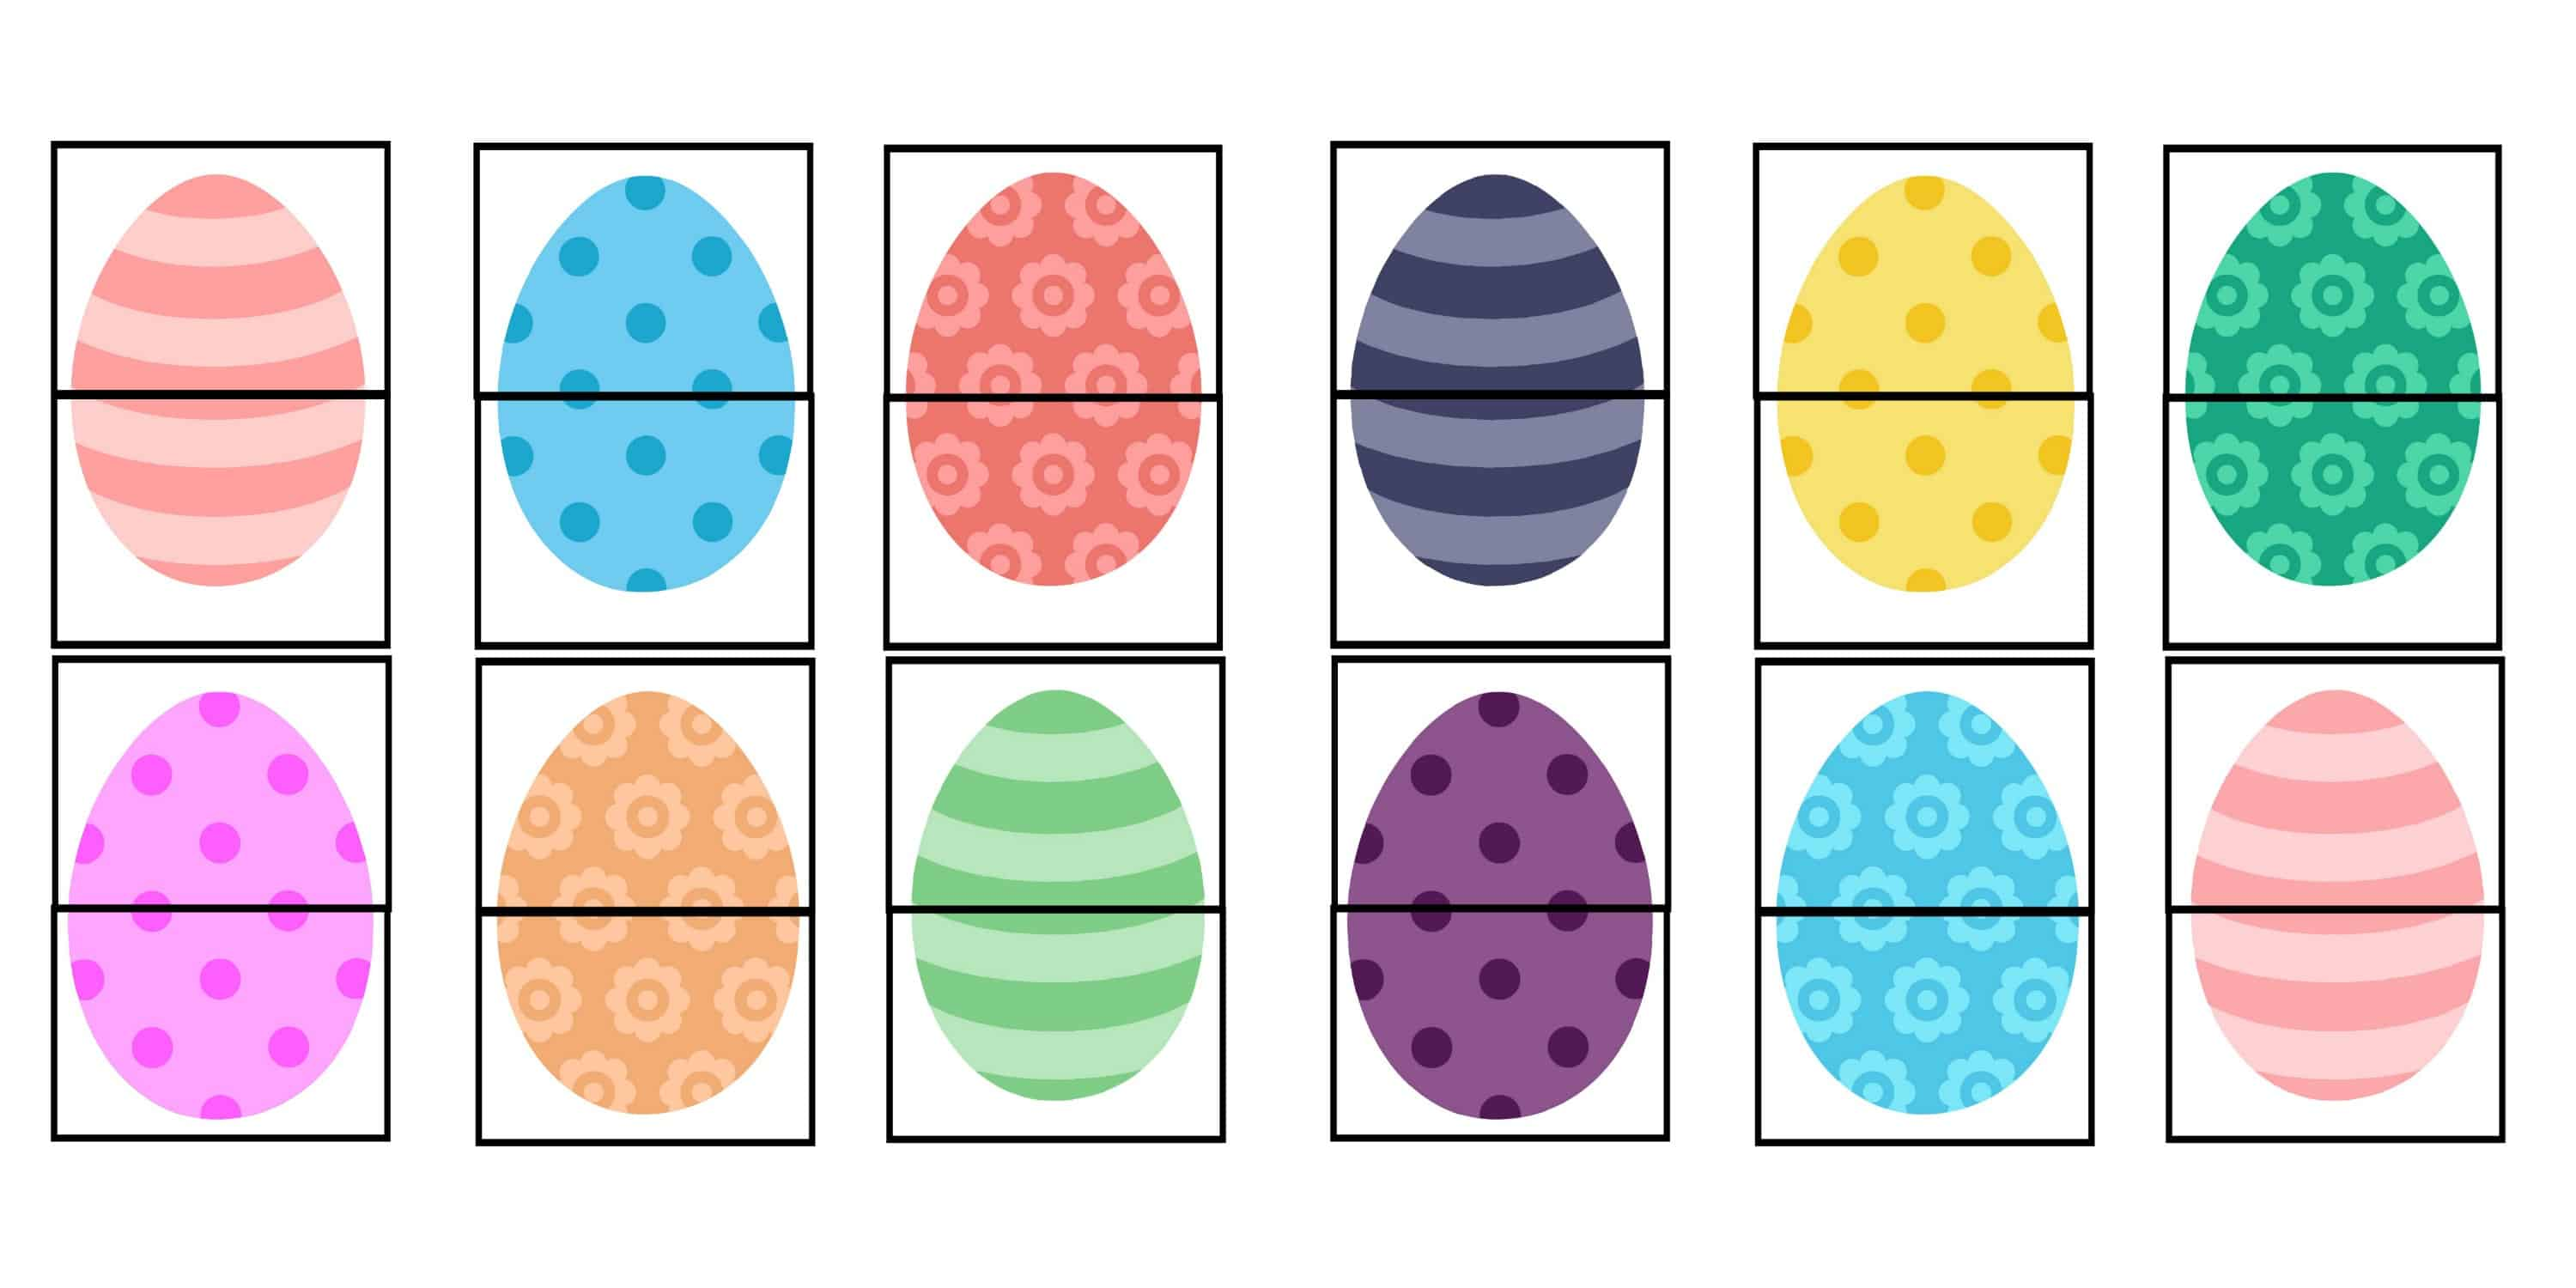 photograph relating to Printable Easter Egg known as Printable Easter Egg Video game for Babies and Preschoolers